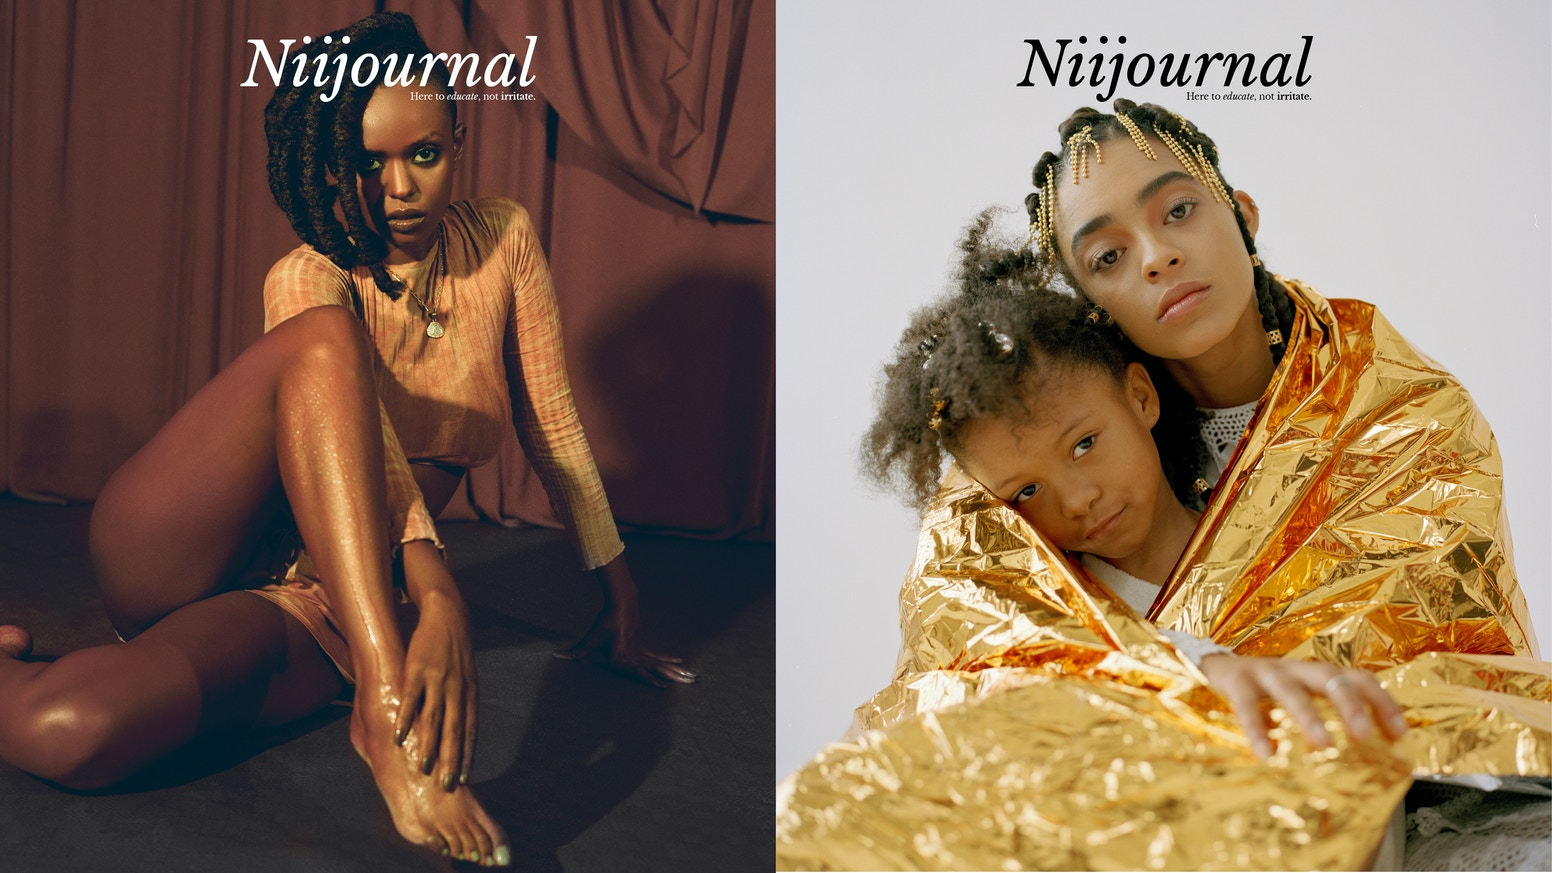 A printed publication exploring the issues of empowerment and representation within race.